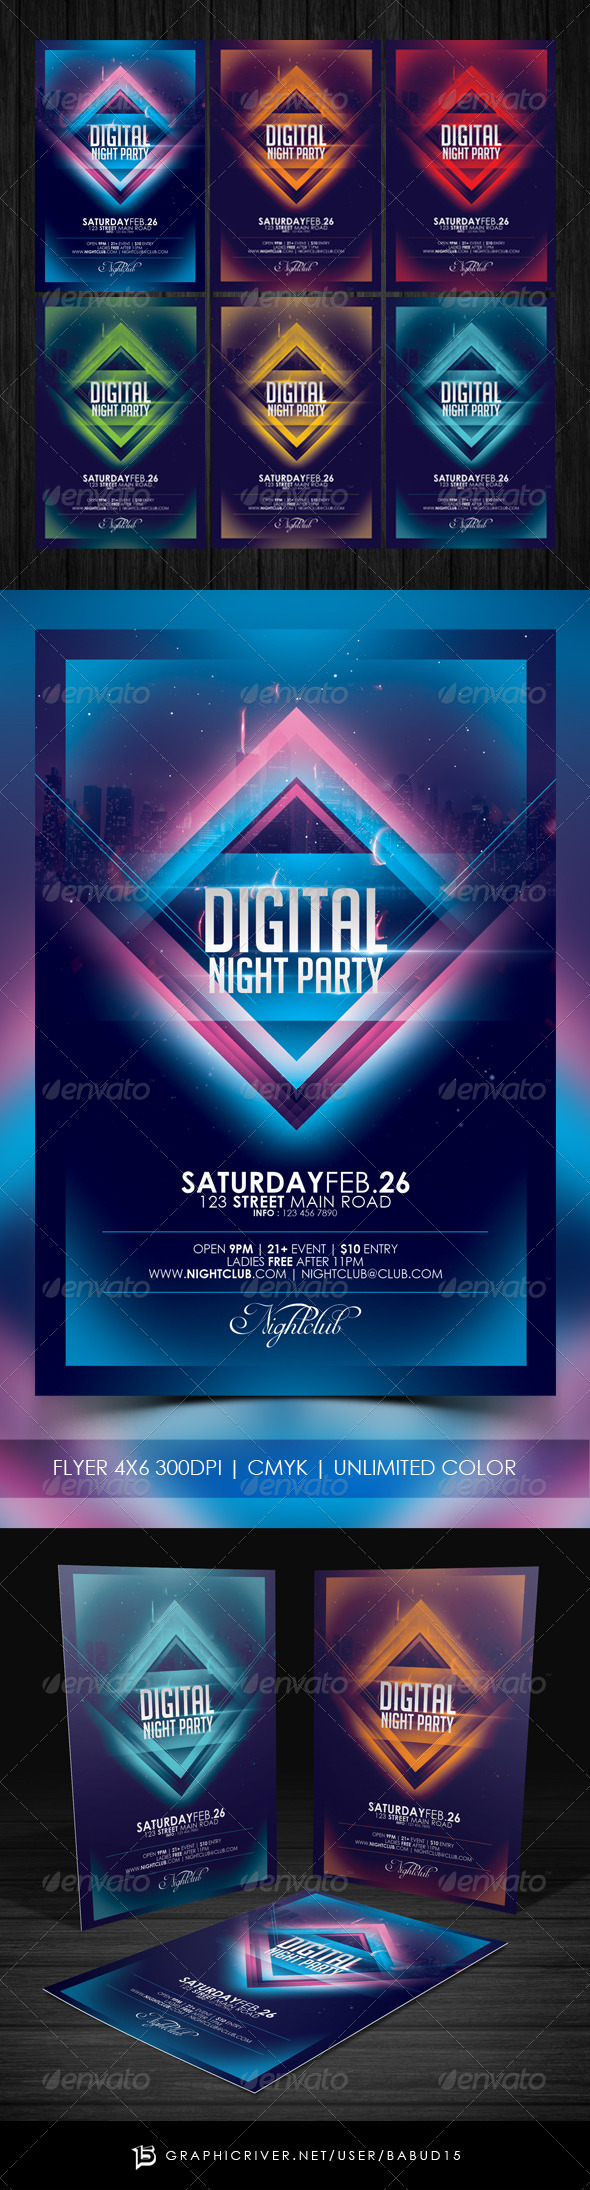 GraphicRiver Digital Night Party Flyer Template 7070963